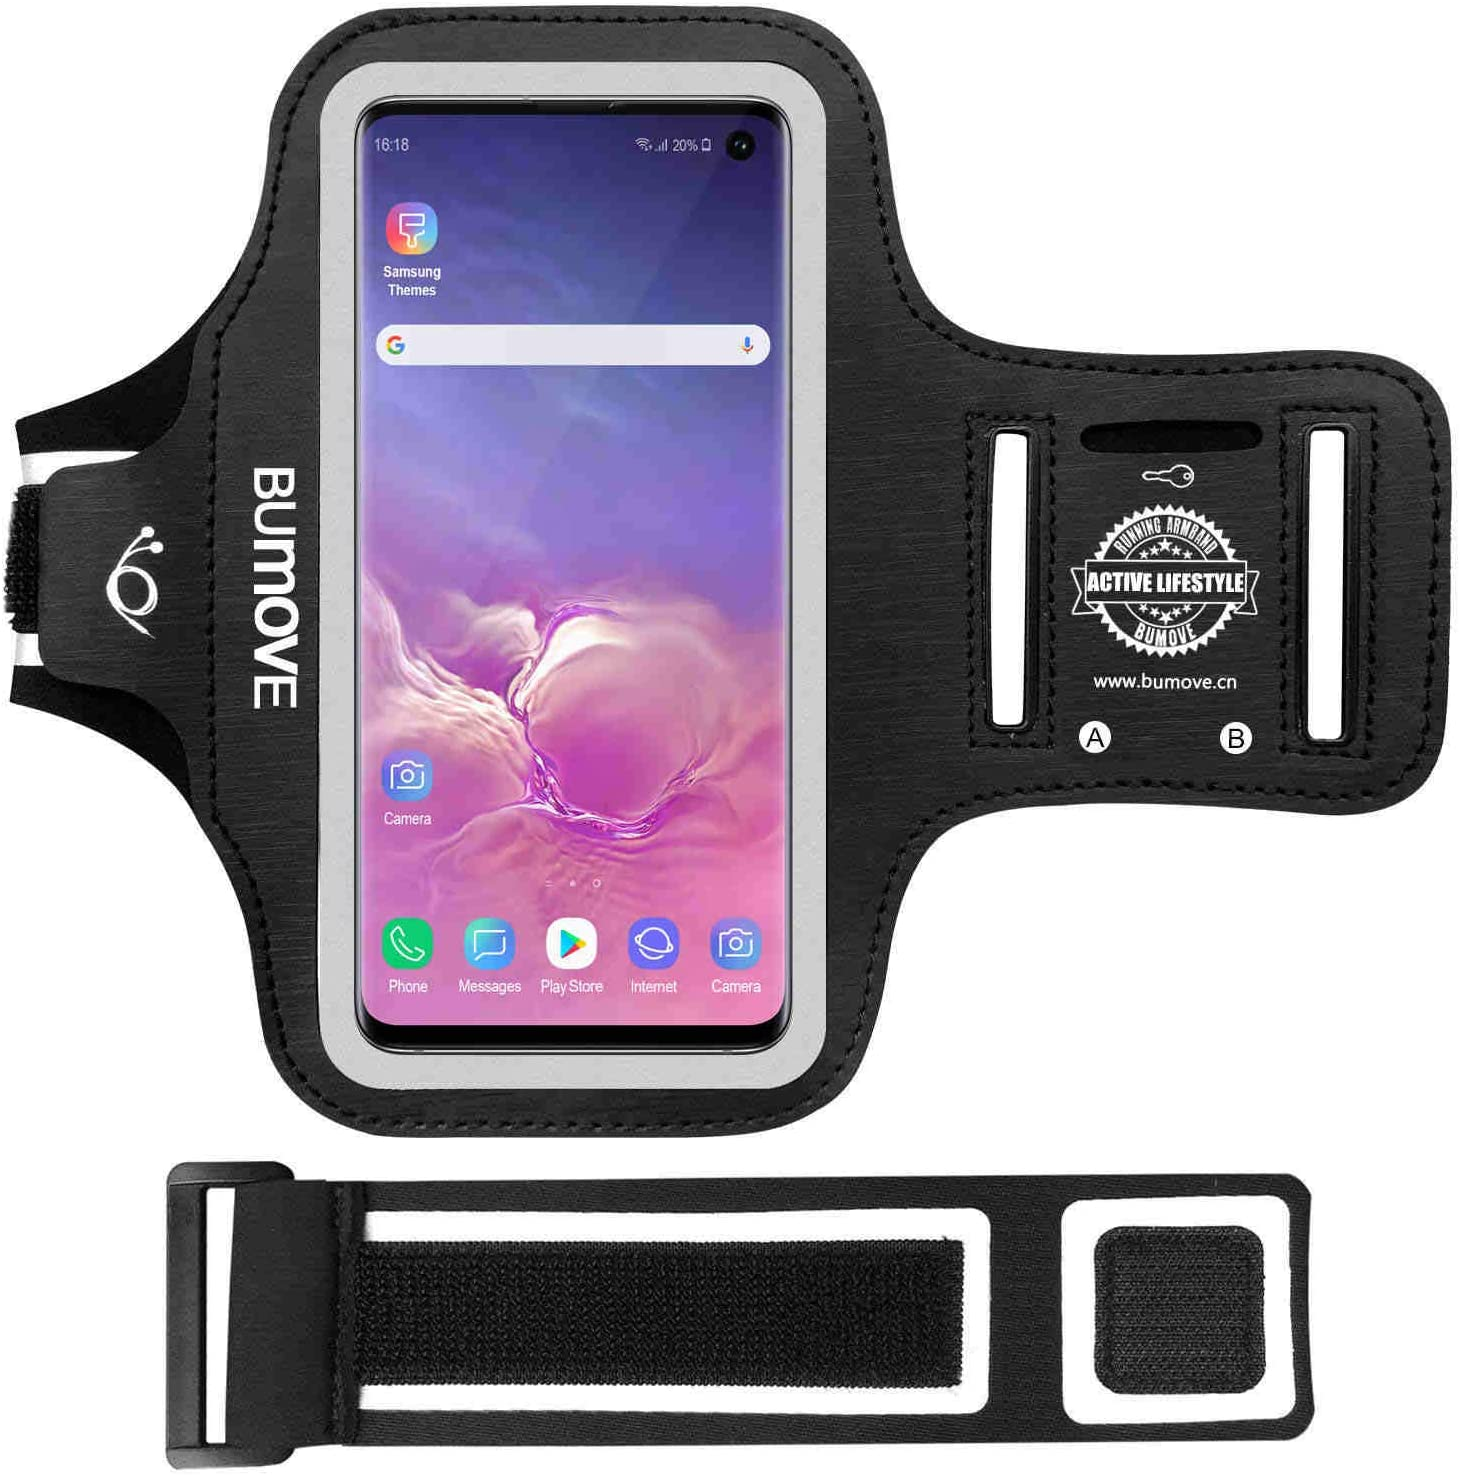 SAMSUNG GALAXY S9 PLUS Quality Gym Running Sports Workout Armband Phone Cover